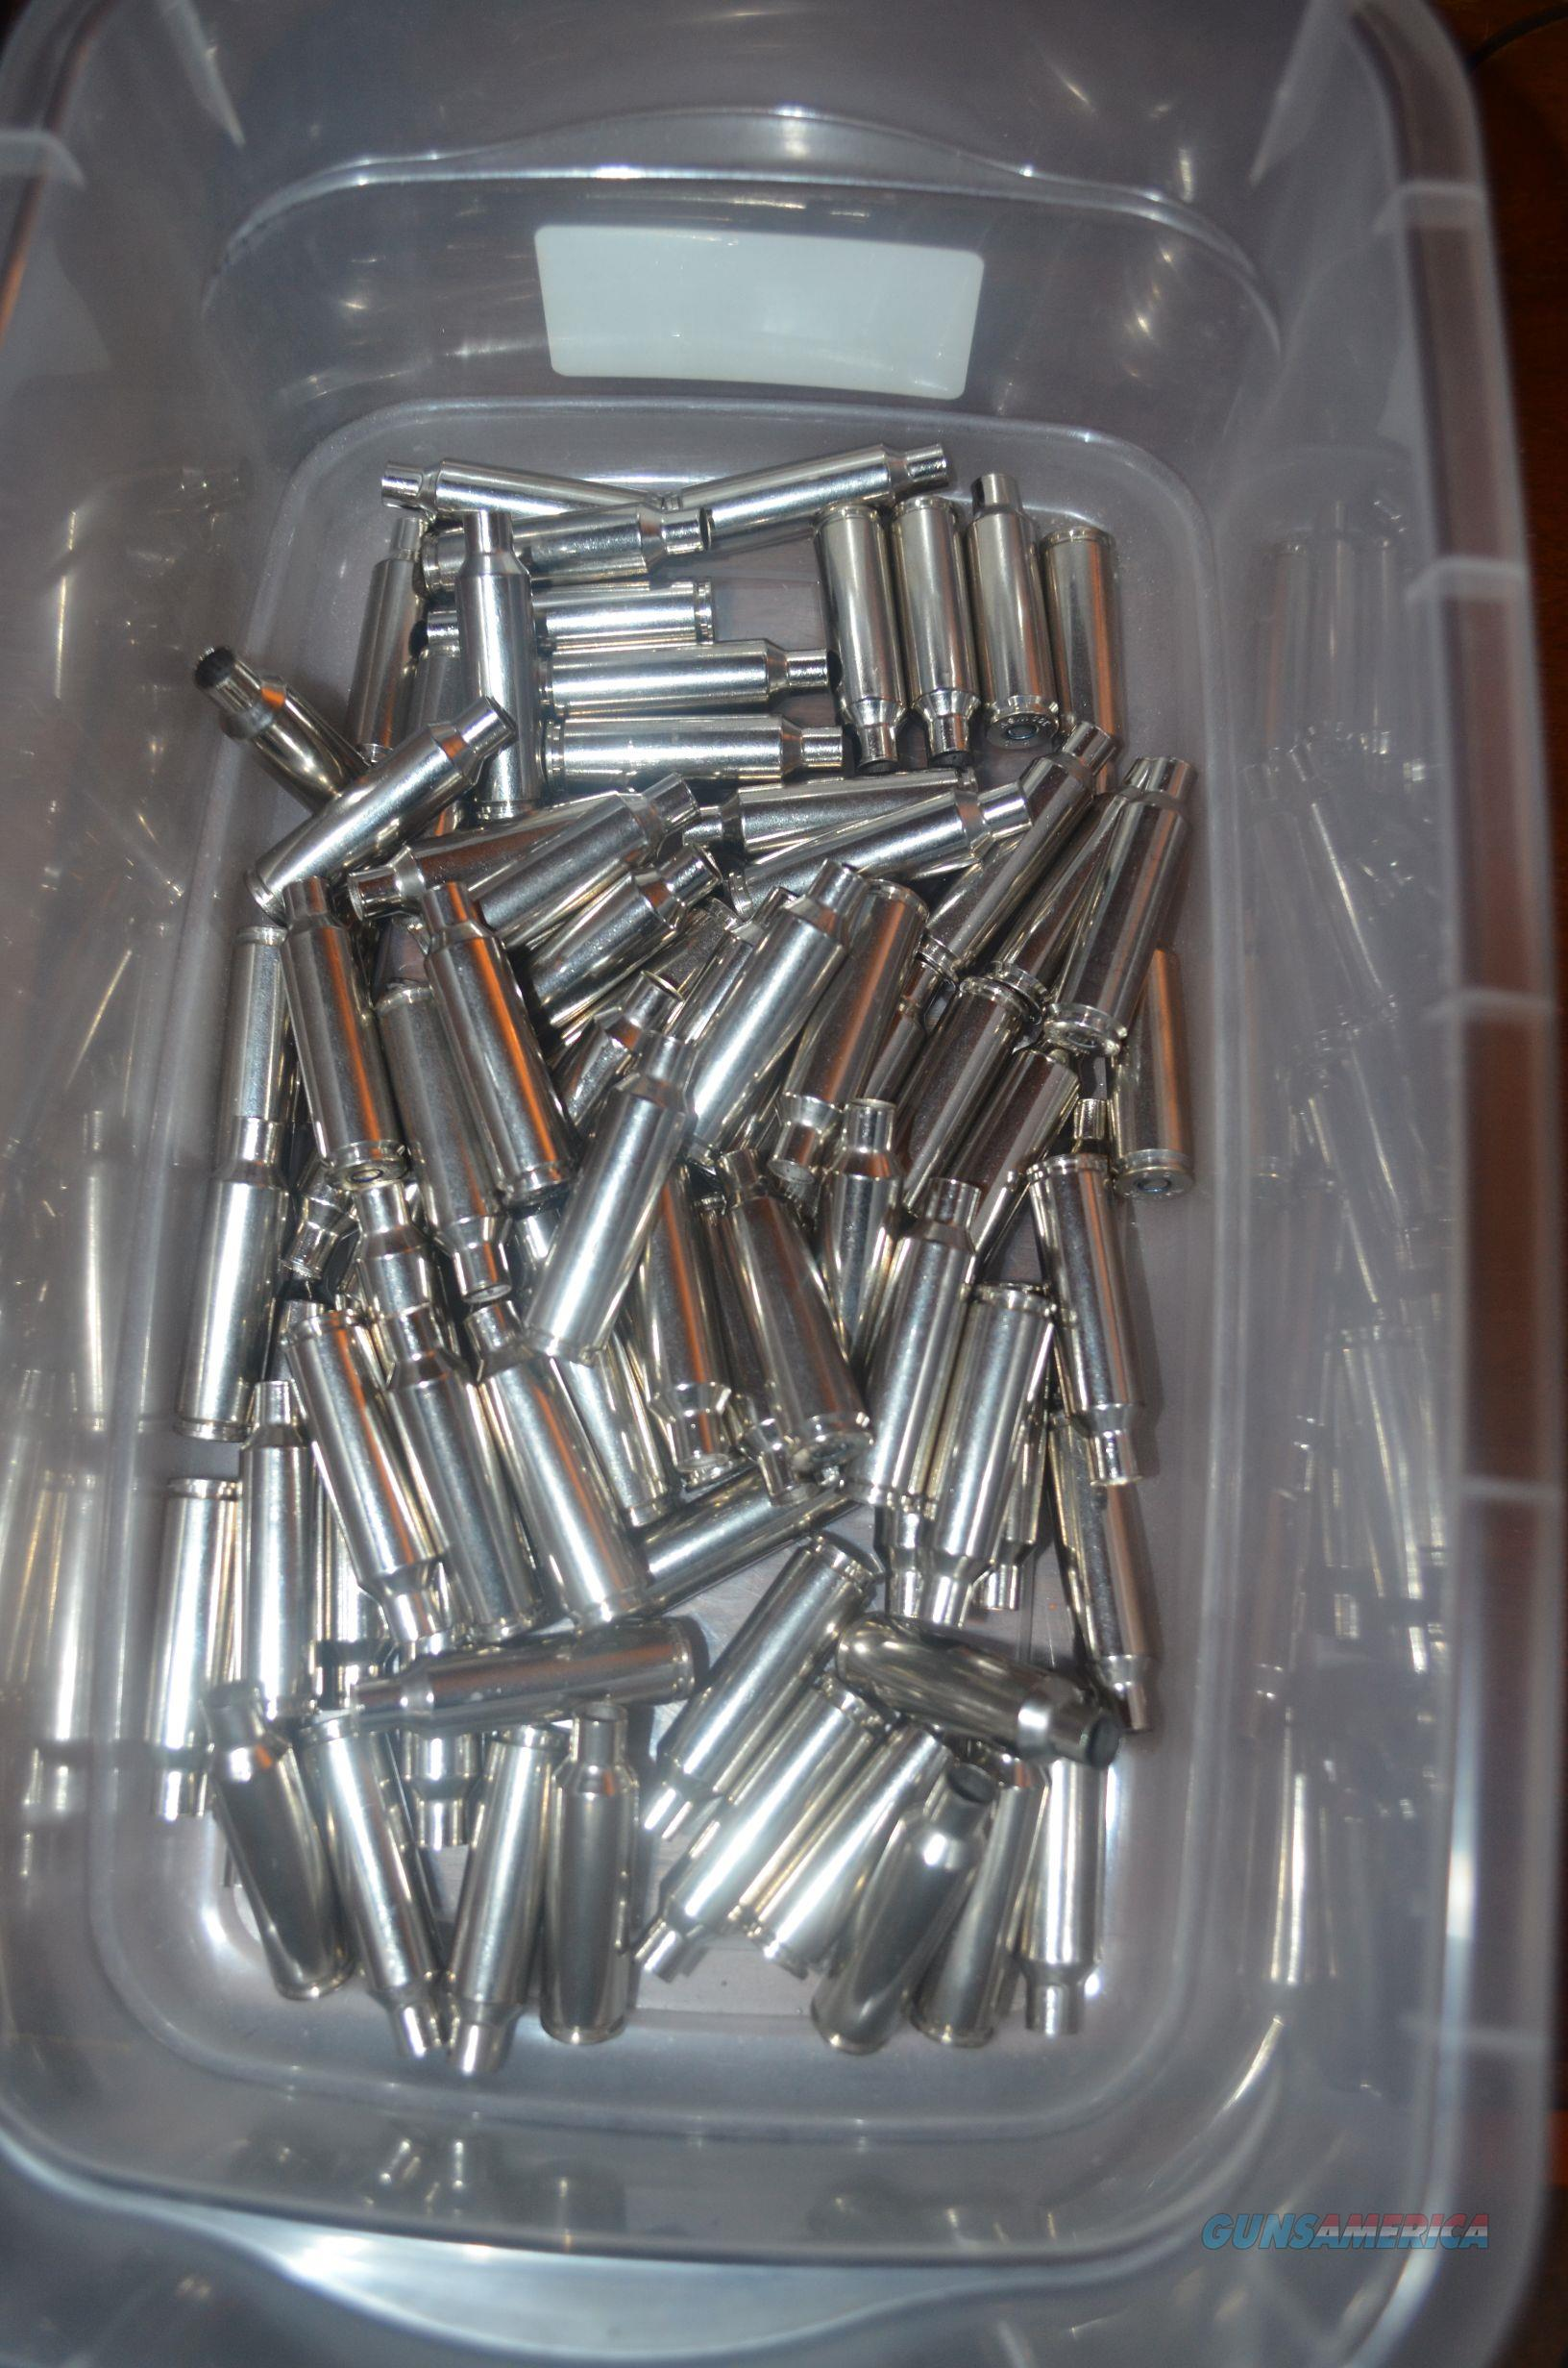 80 Pieces Federal 300 WSM Primed Nickel Brass  Non-Guns > Reloading > Components > Brass